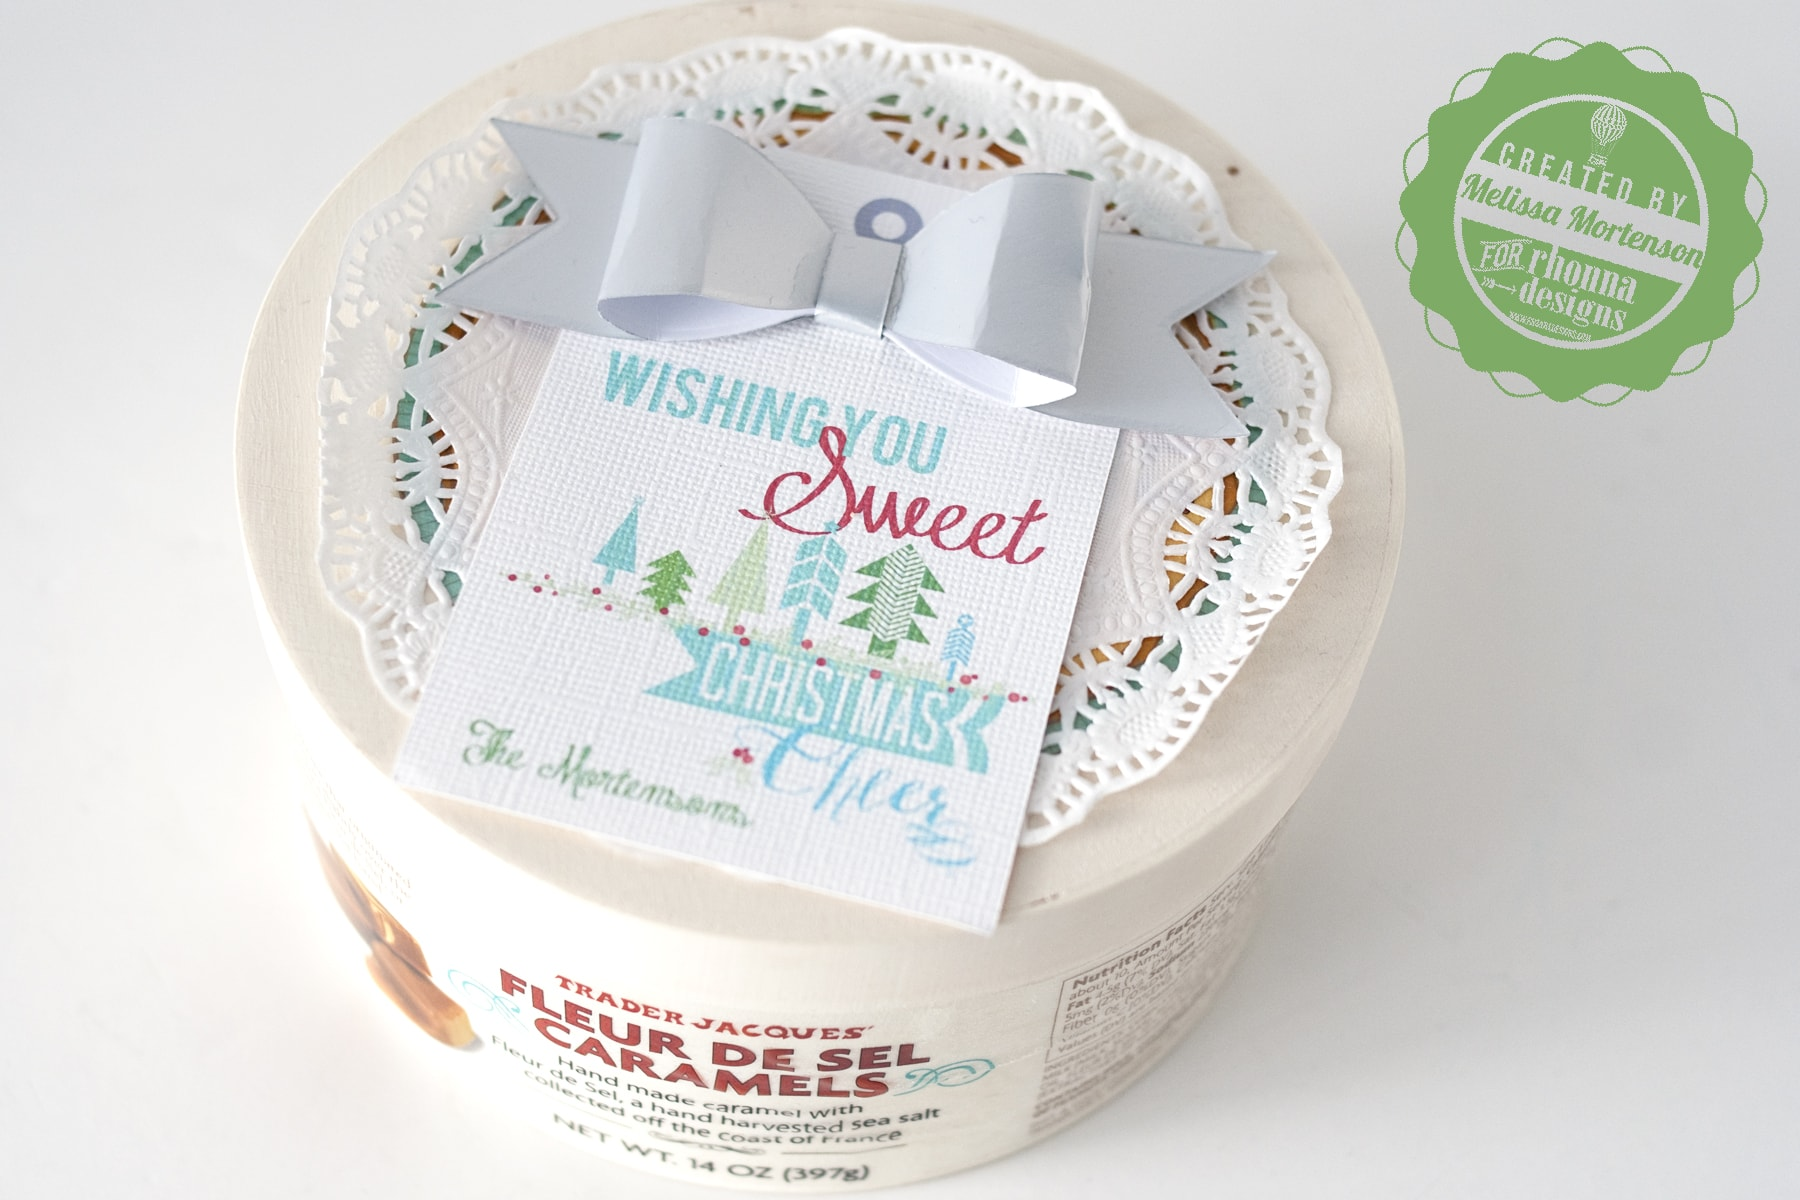 Cute idea for tags for neighbor treats for Christmas. Layer the tag on a doily with a paper bow, could even use with store bought treats